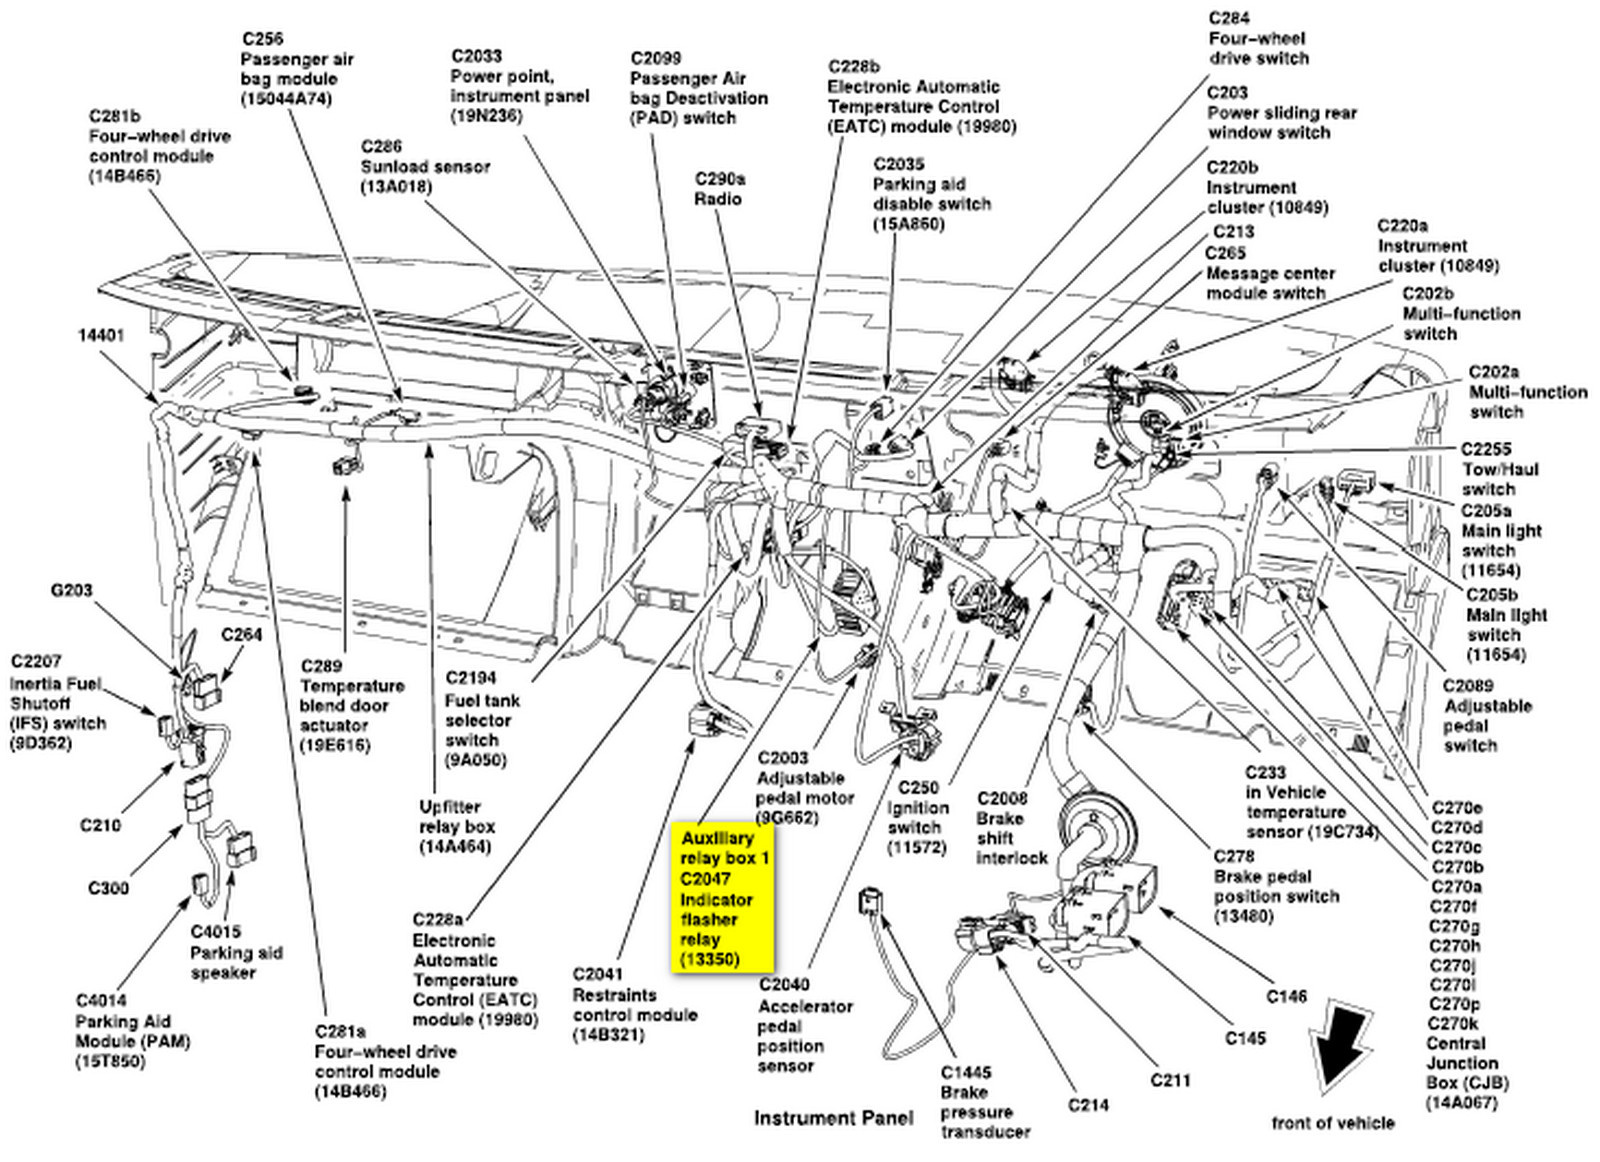 2004 f150 turn signal wiring diagram auto electrical wiring diagram ford e series cargo questions where is the turn signal relay on a rh cargurus com 2004 f150 parts diagram 2004 ford f 150 engine diagram publicscrutiny Image collections